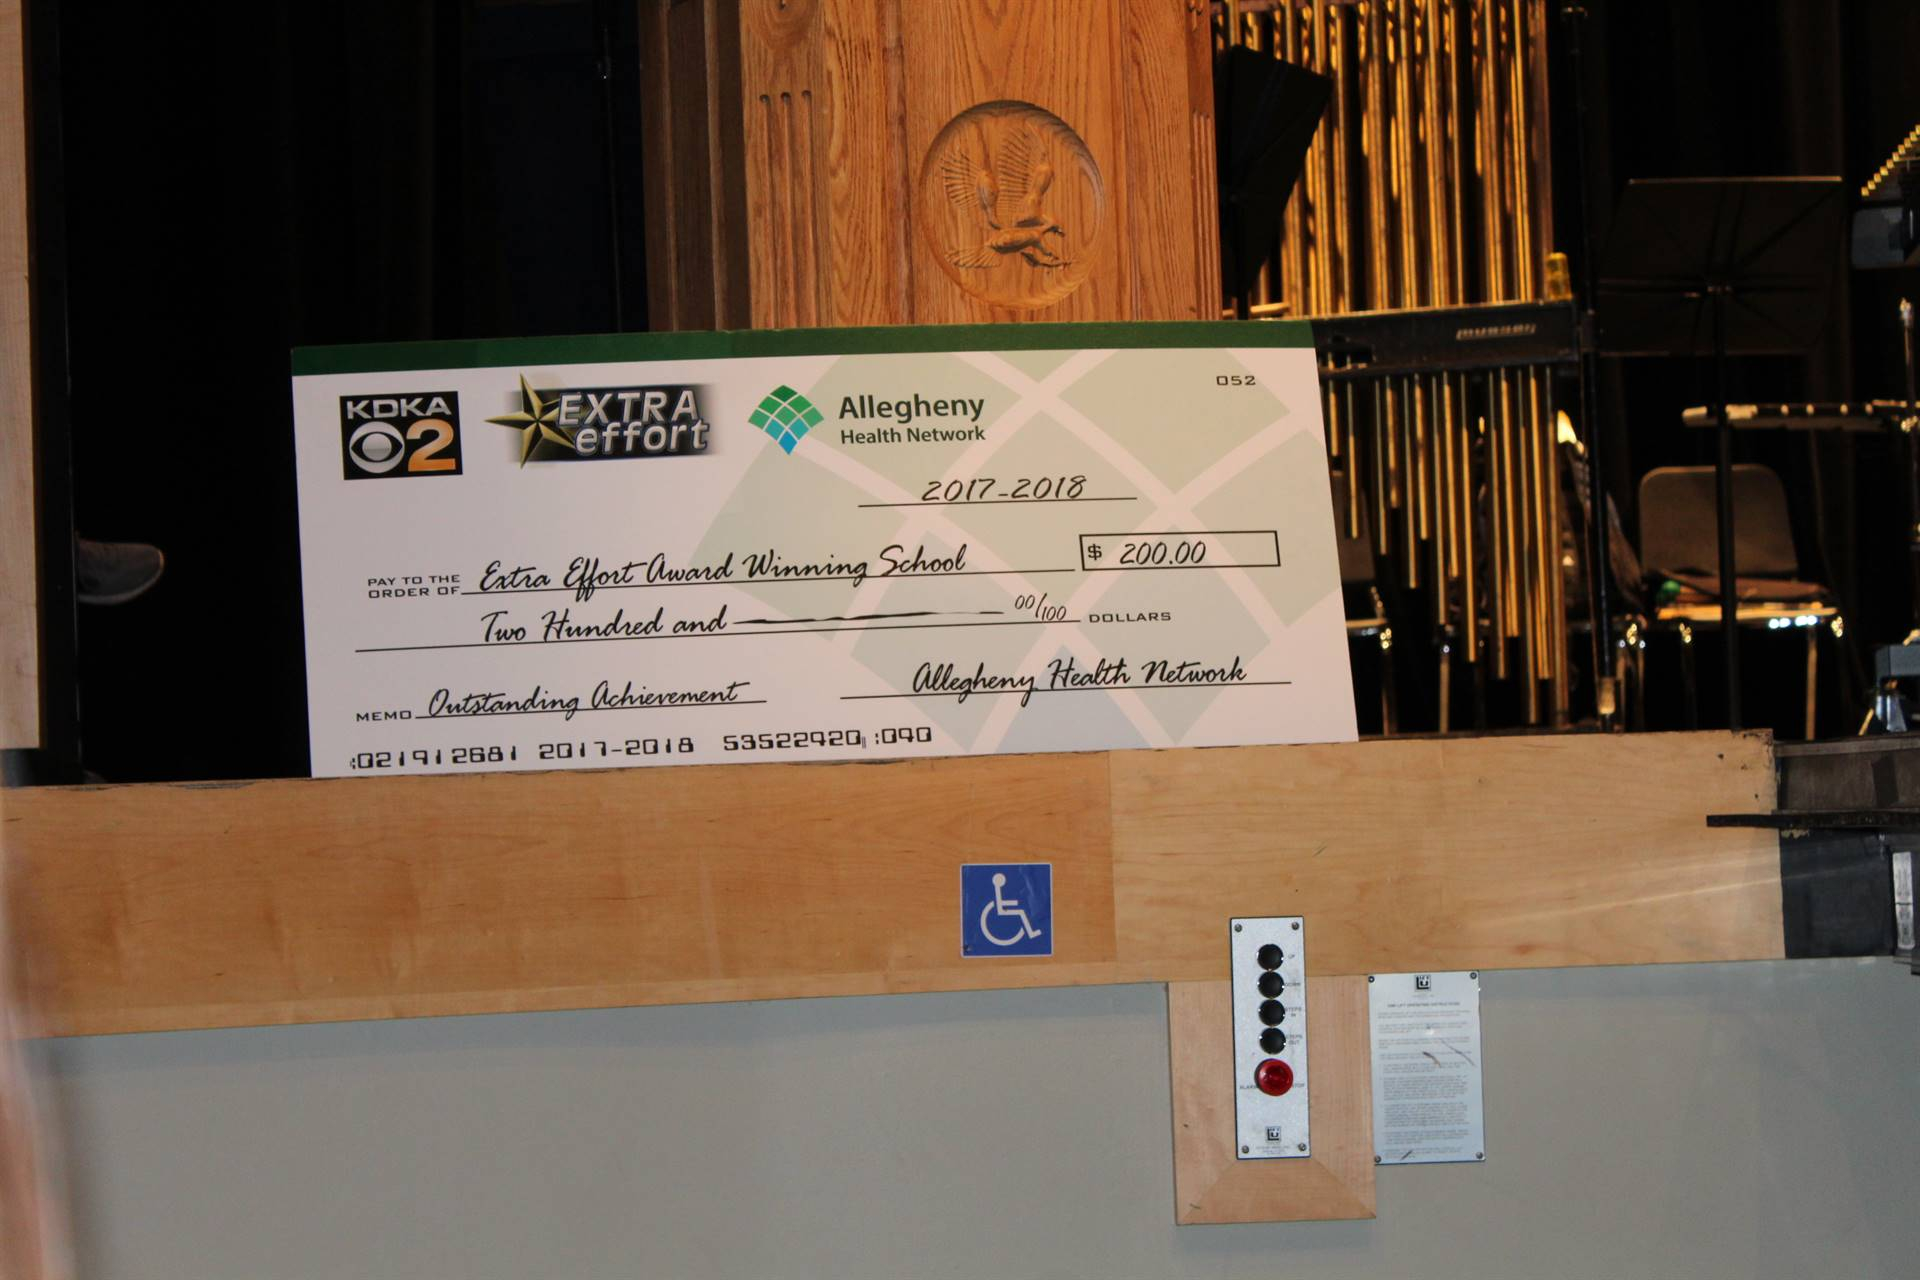 The check from the Allegheny Health Network